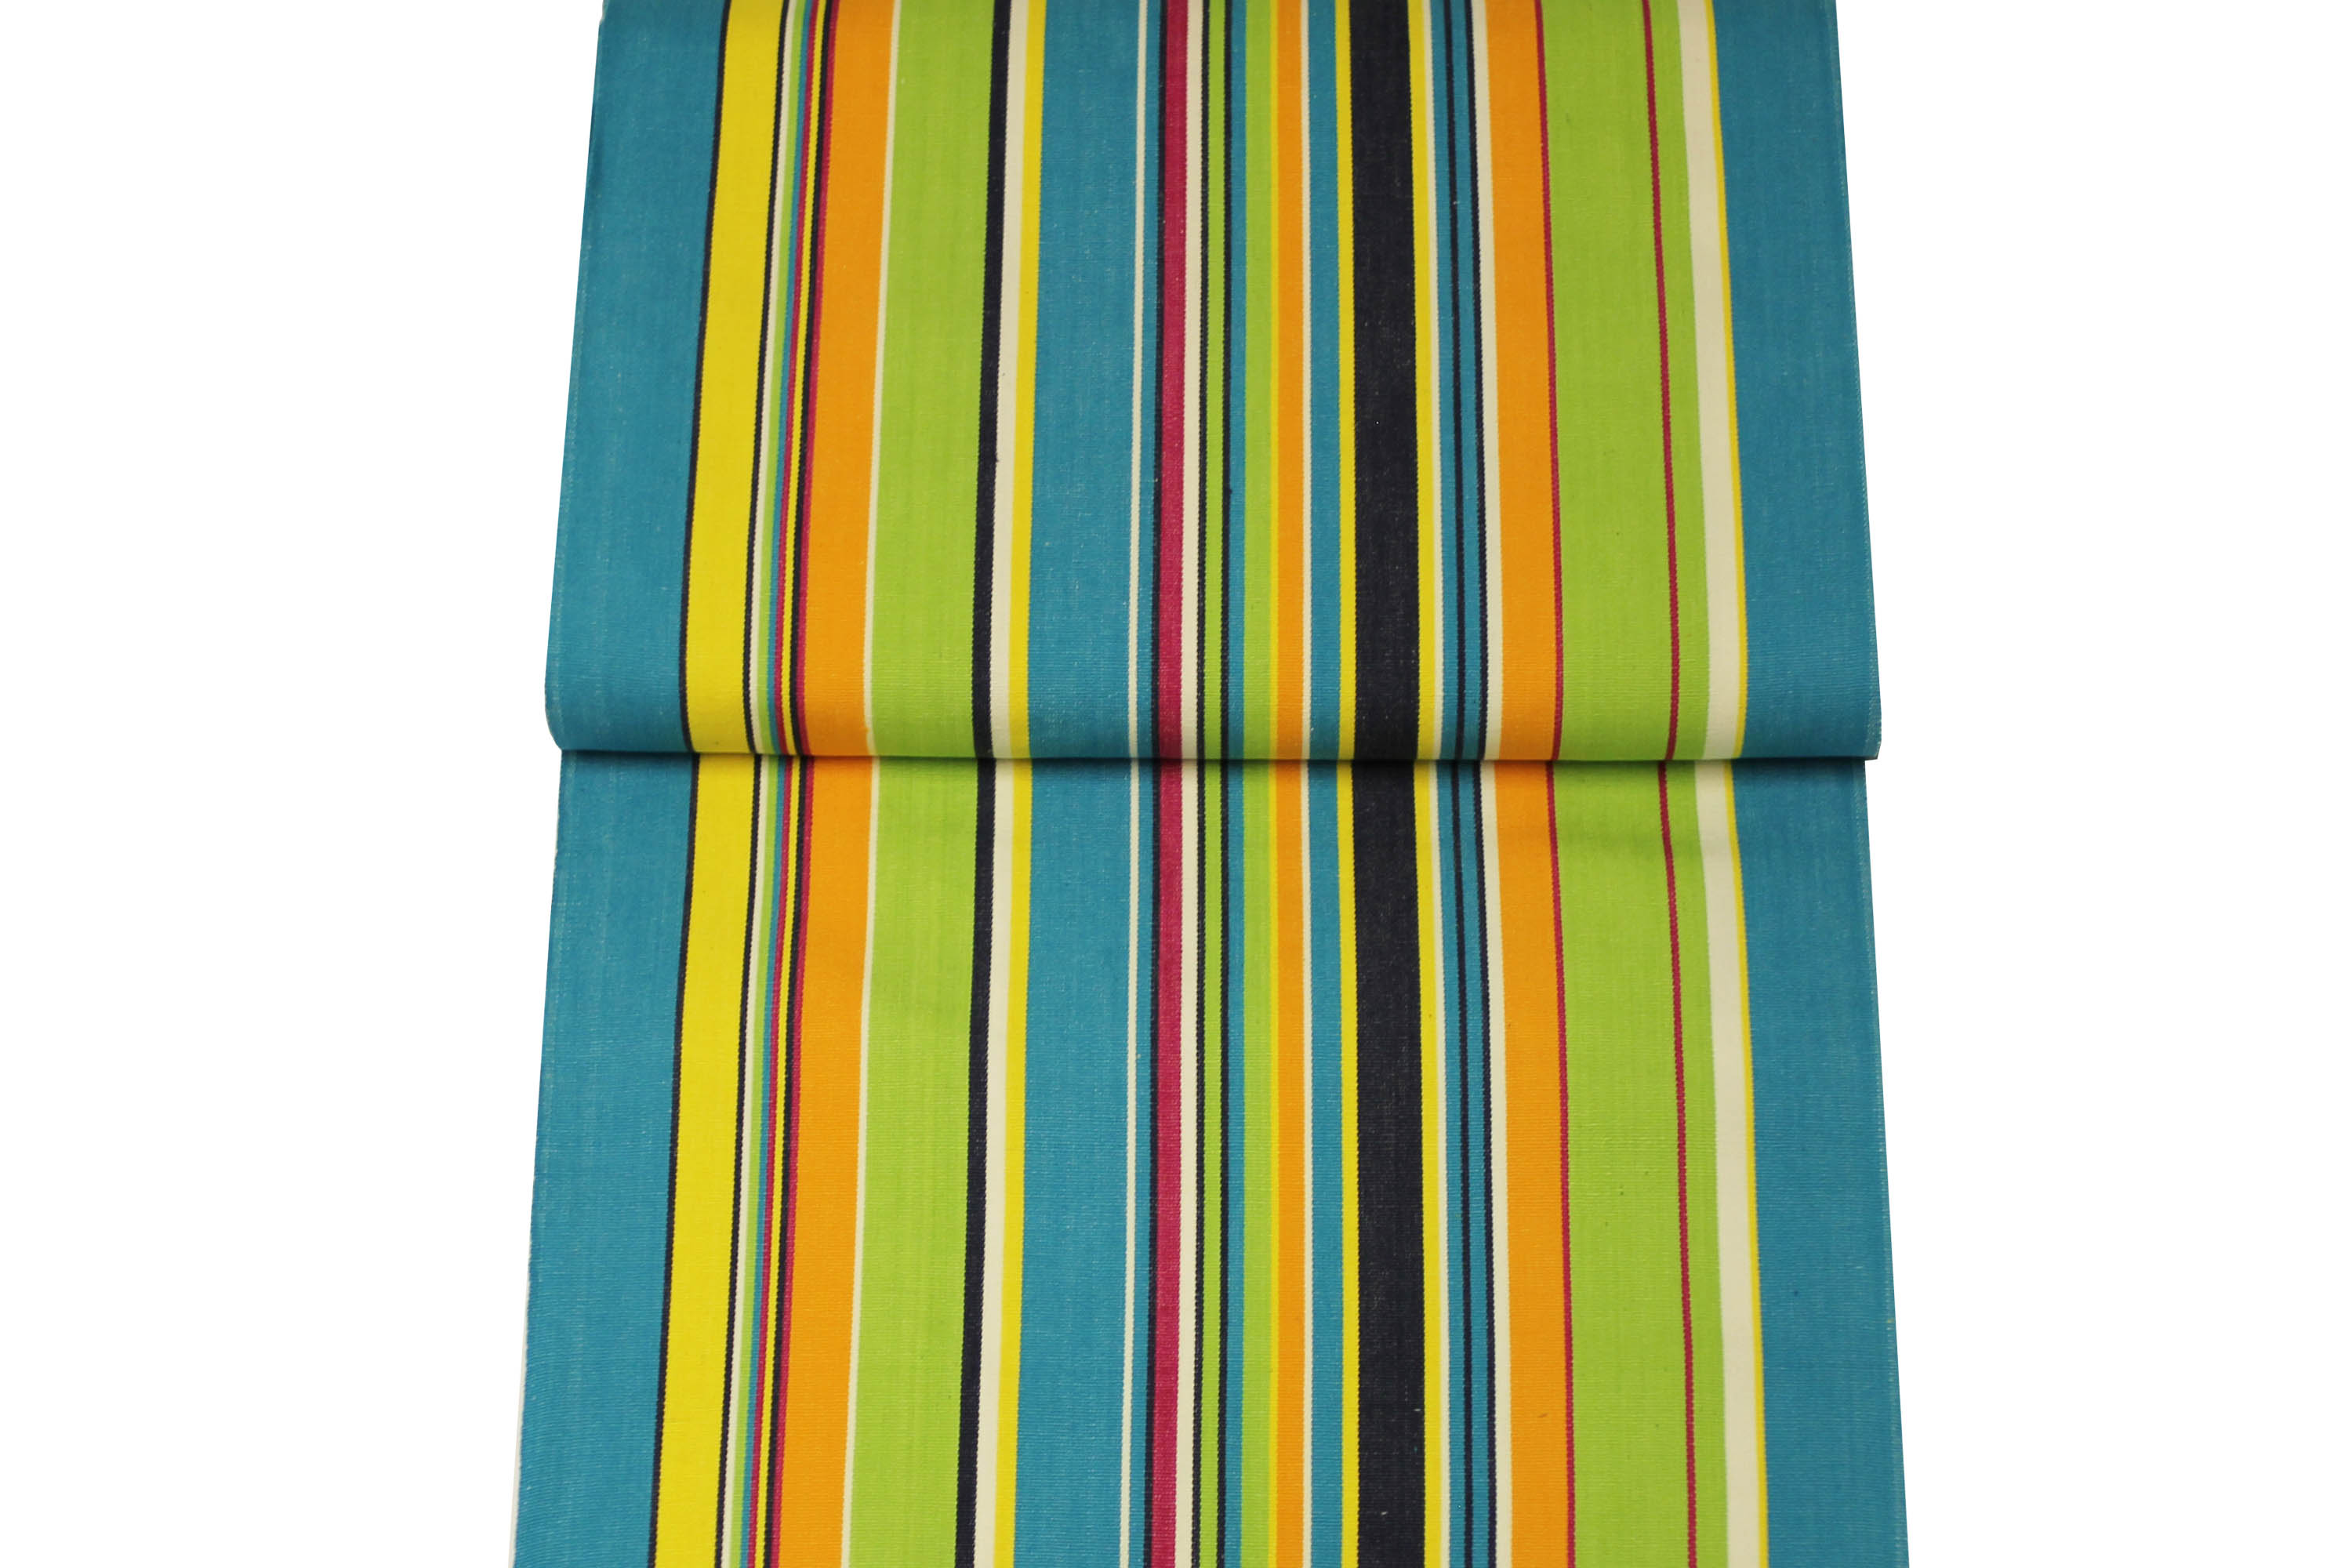 Deckchair Canvas Fabrics | Striped Deck Chair Fabrics | Athletics Stripe